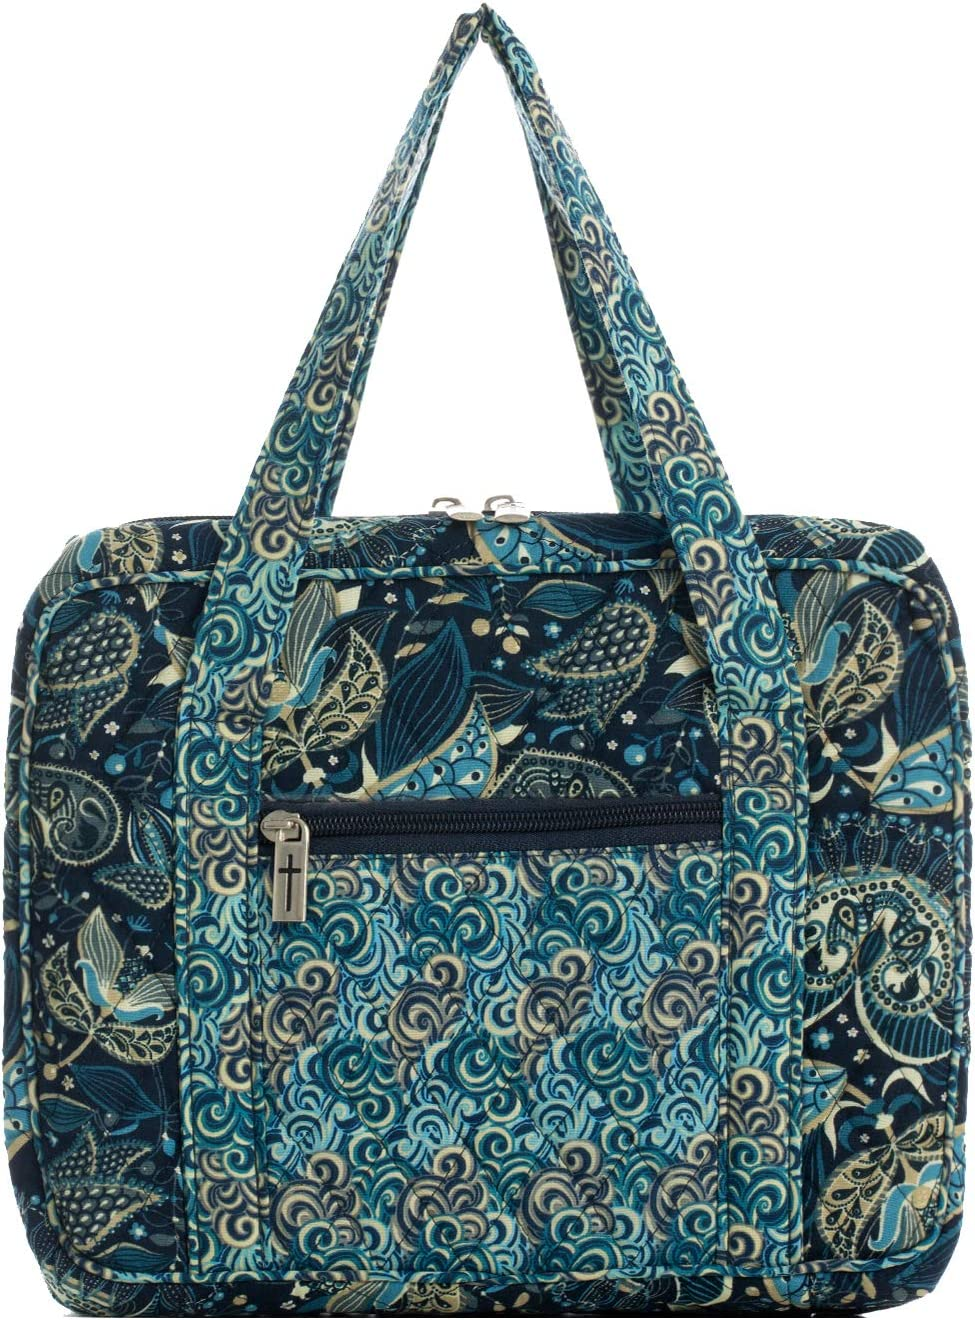 DIWI 10 X 7 X 2.75 Inches Large Sizes Bible Cover Bible Tote Bible Purse Quilted Cotton Pen Holder Inside Fit for Large Print NLT Life Application Study Bible L, 207A Purple Paisley